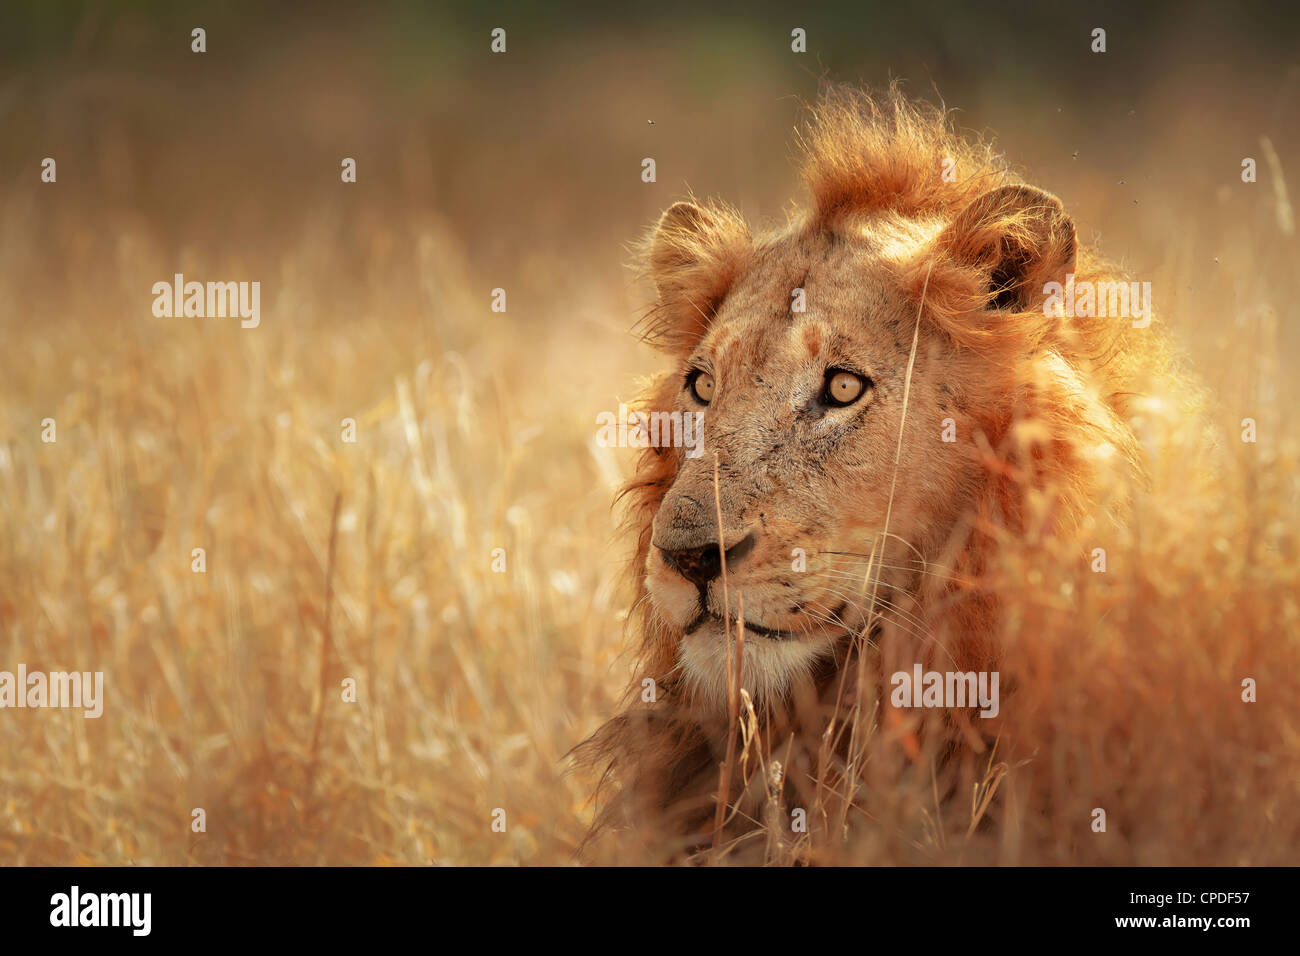 Grand mâle lion couché dans la prairie dense - Parc National Kruger - Afrique du Sud Photo Stock